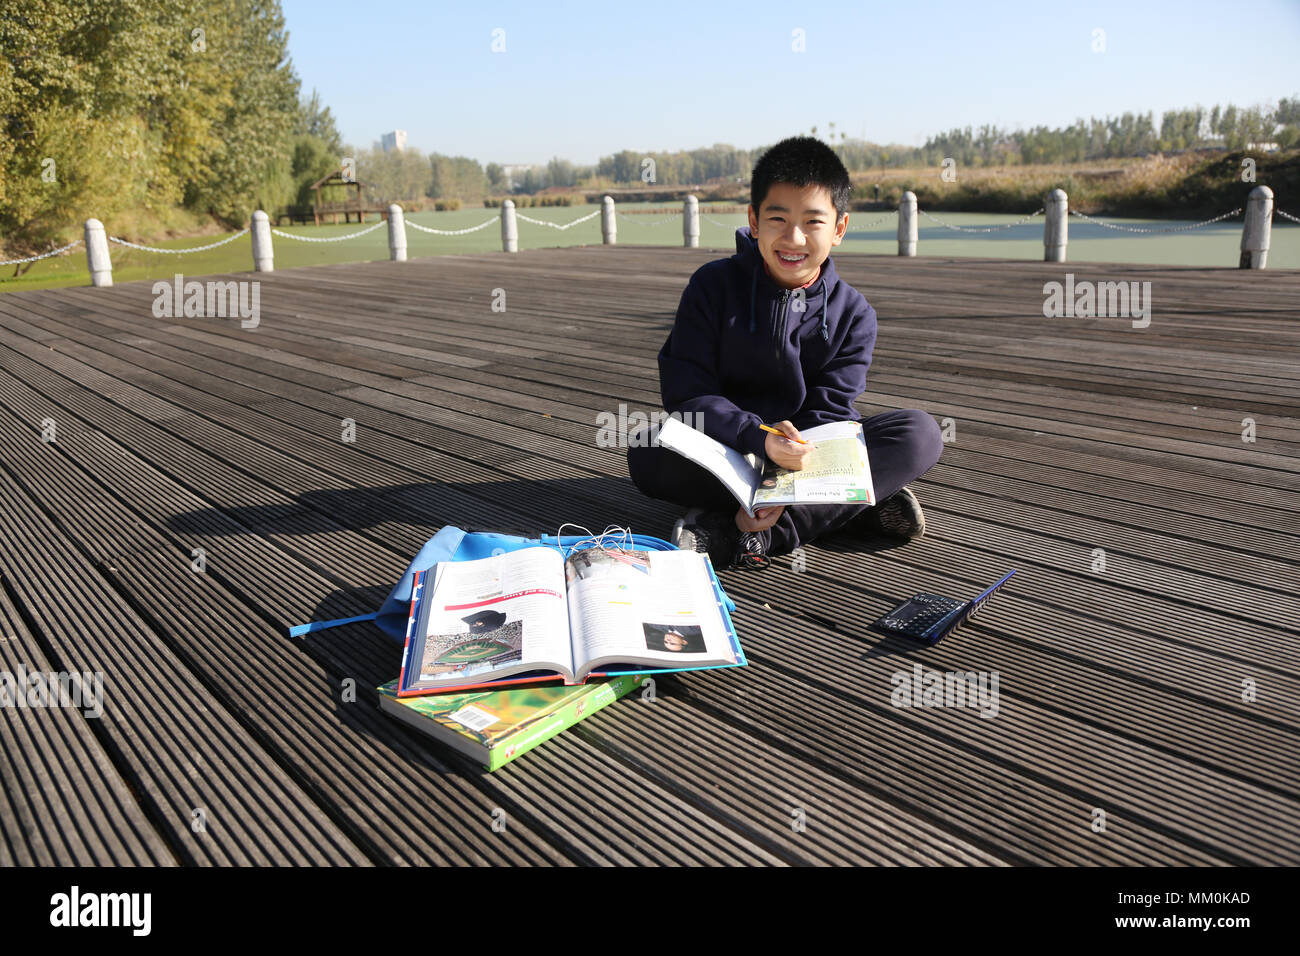 The boy studied in outdoor - Stock Image